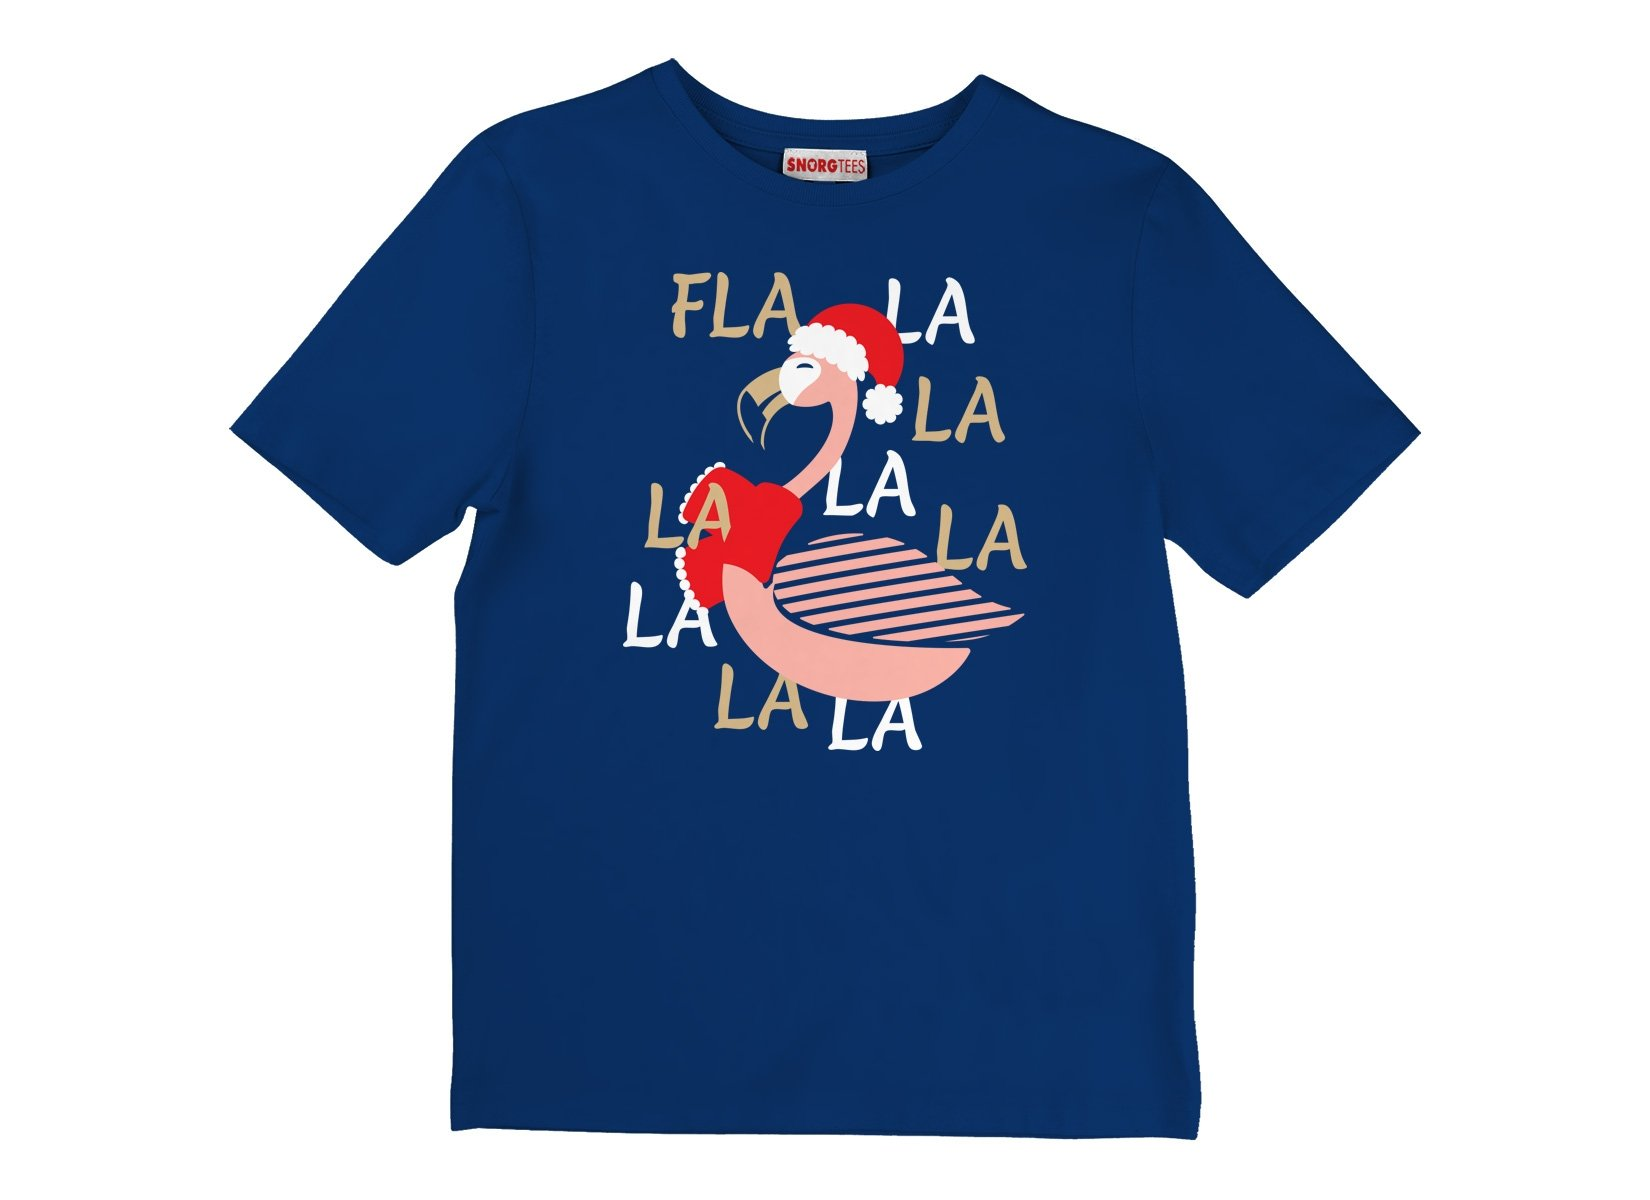 Fla La La Lamingo on Kids T-Shirt